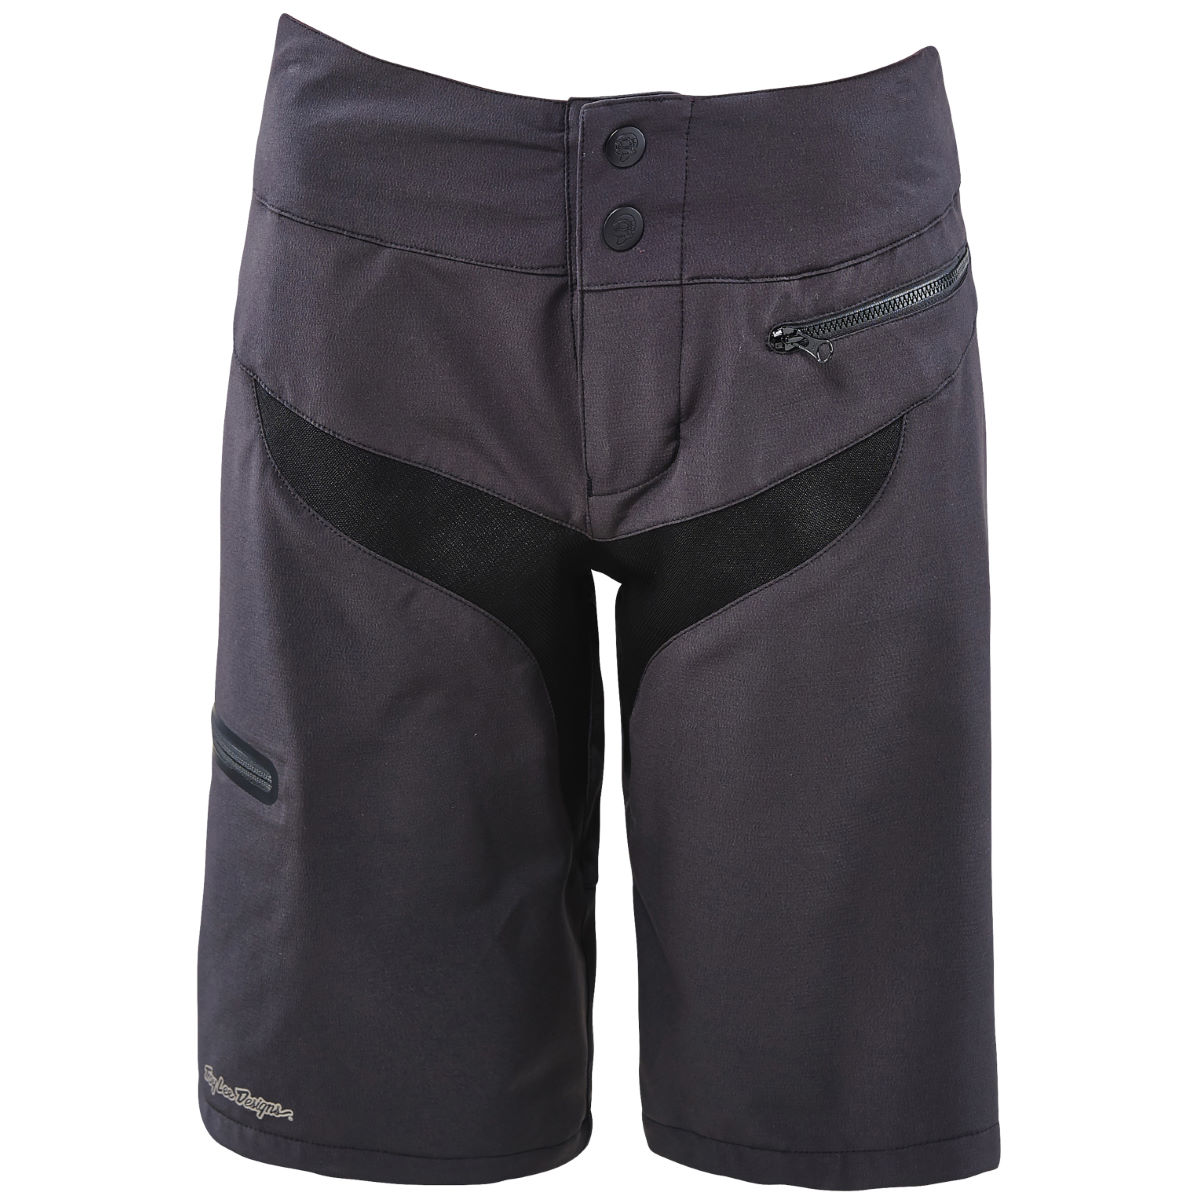 Short Femme Troy Lee Designs Skyline - S Noir Shorts amples